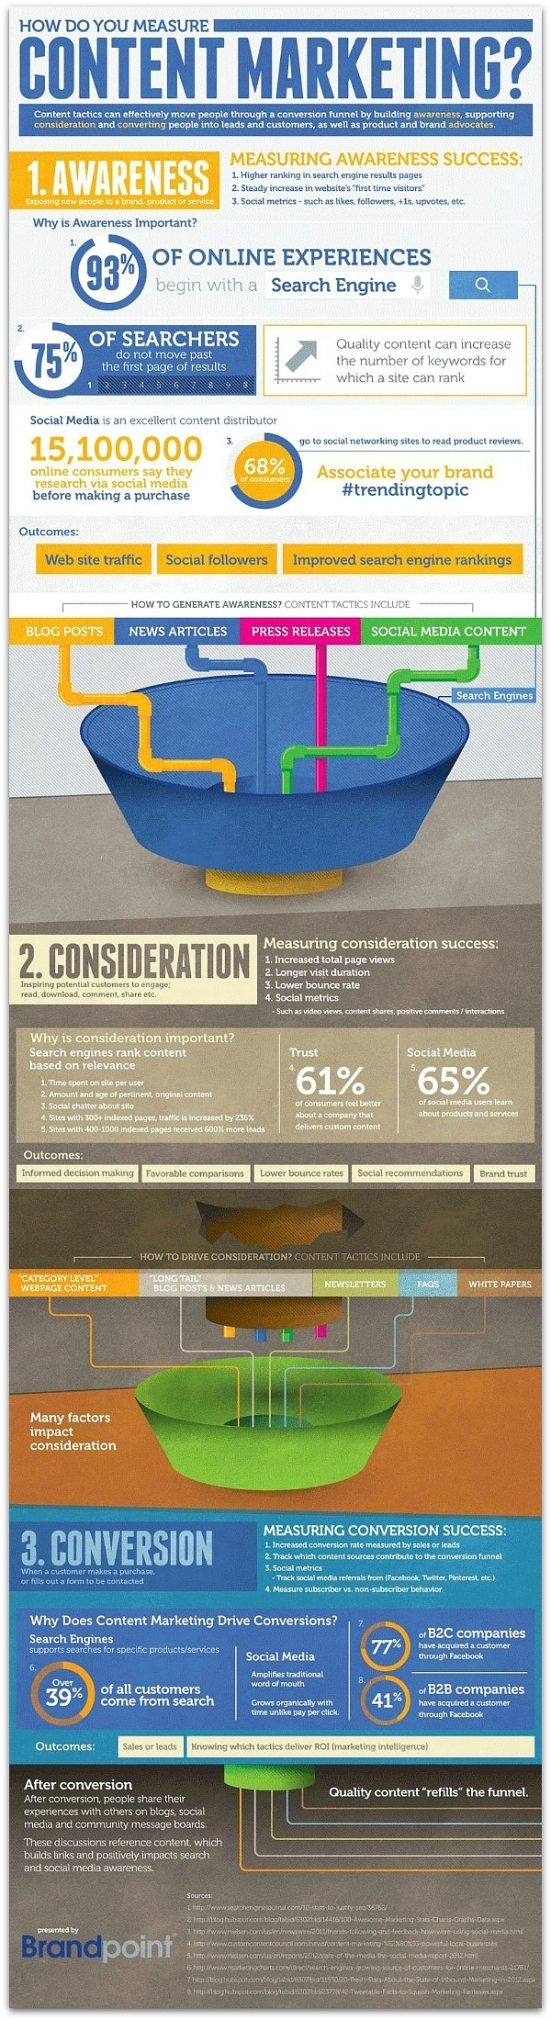 How_to_Measure_Content_Marketing_Infographic